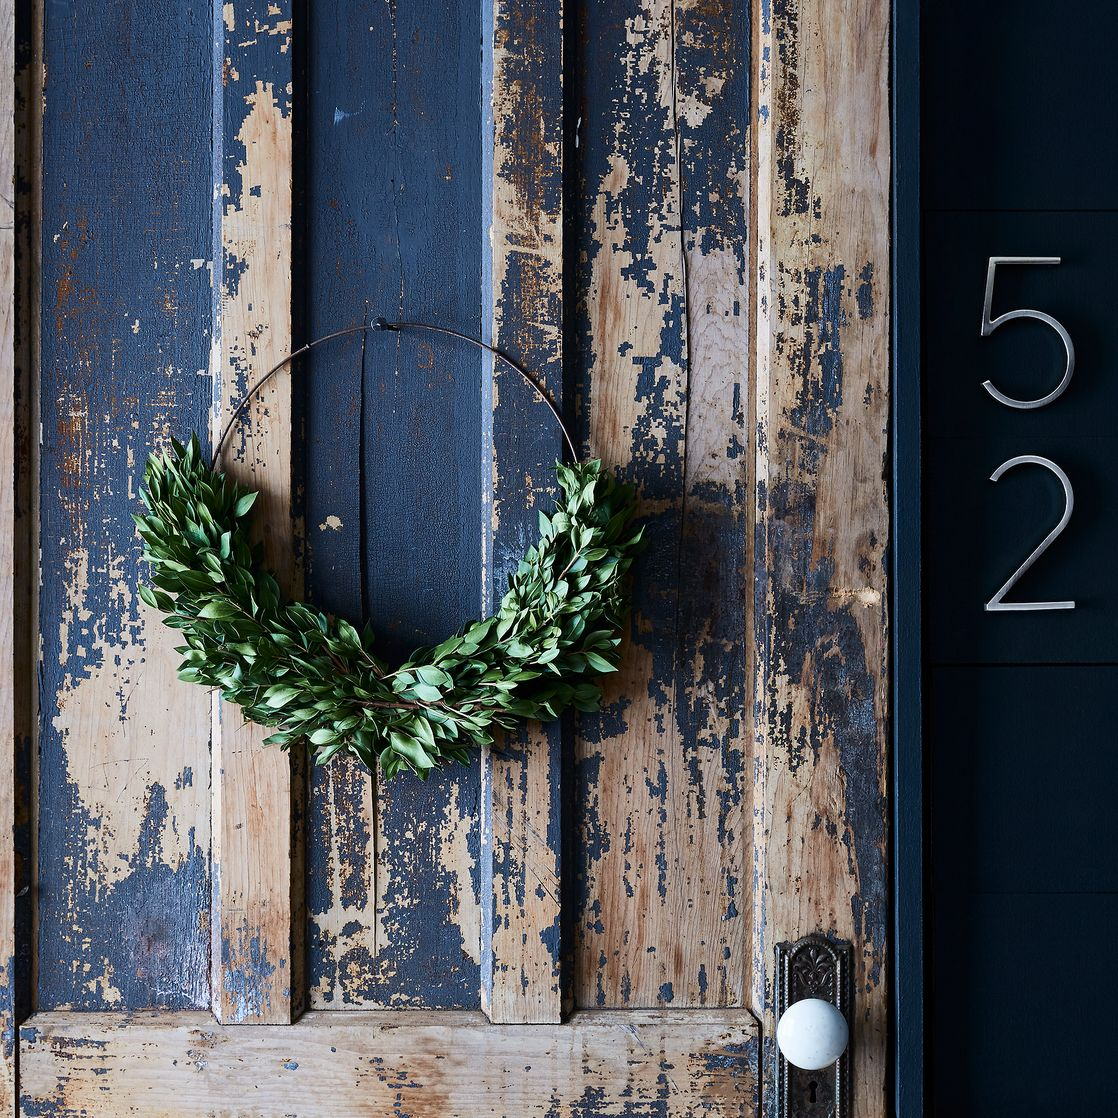 image result for half wreath natural distressed door food 52